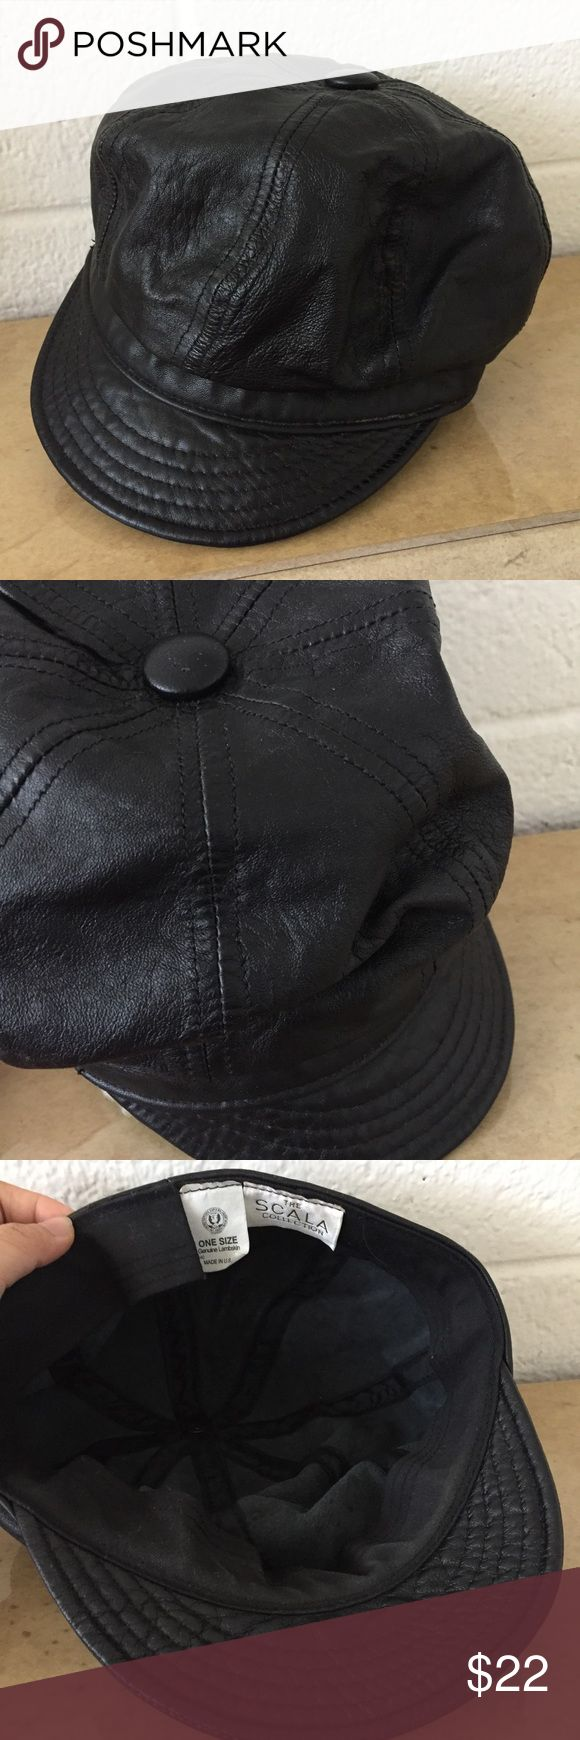 The Scala Collection Vintage Lambskin Cap The Scala Collection Vintage Lambskin Page Boy Cap. Real Lambskin. Made in USA. Vintage Accessories Hats